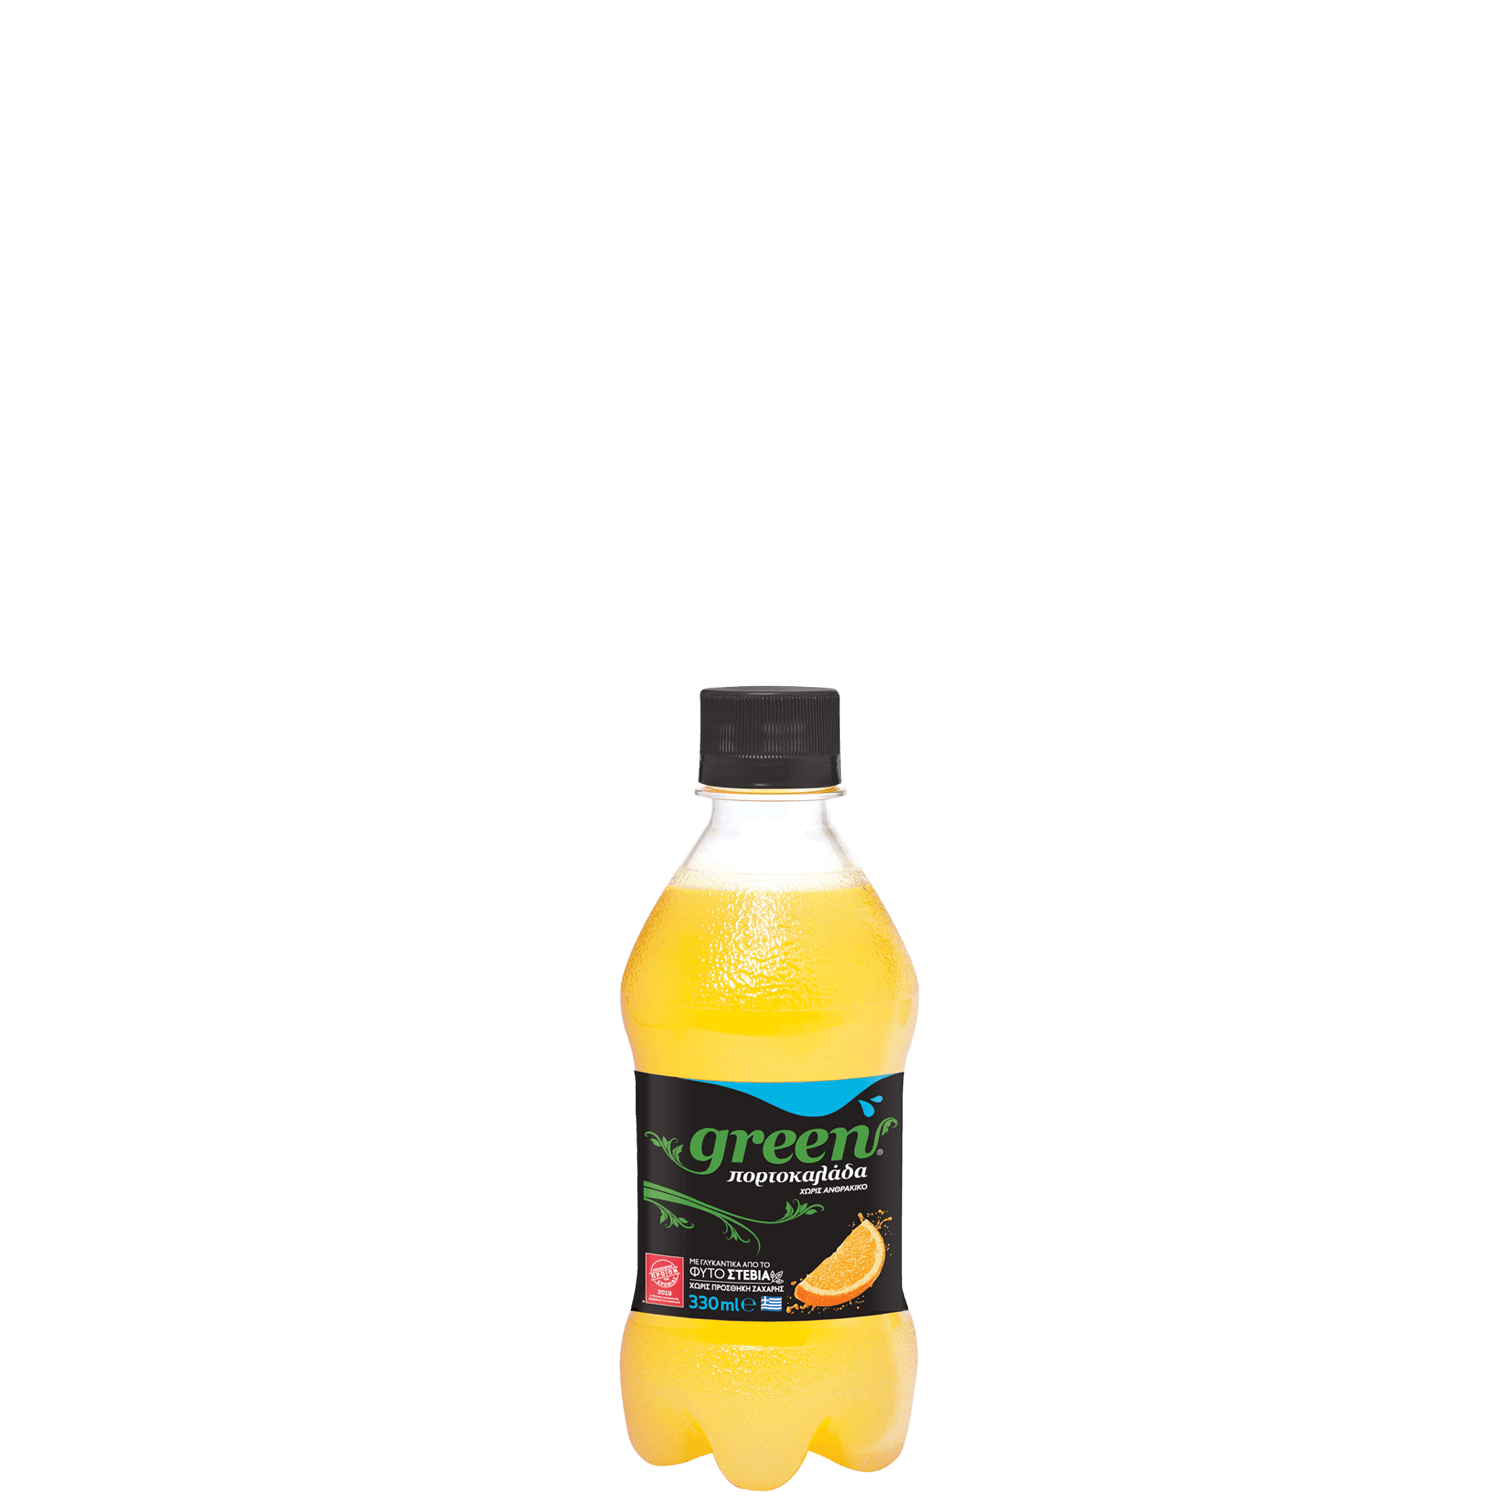 Green Orange Nc - 330ml - PET Bottle